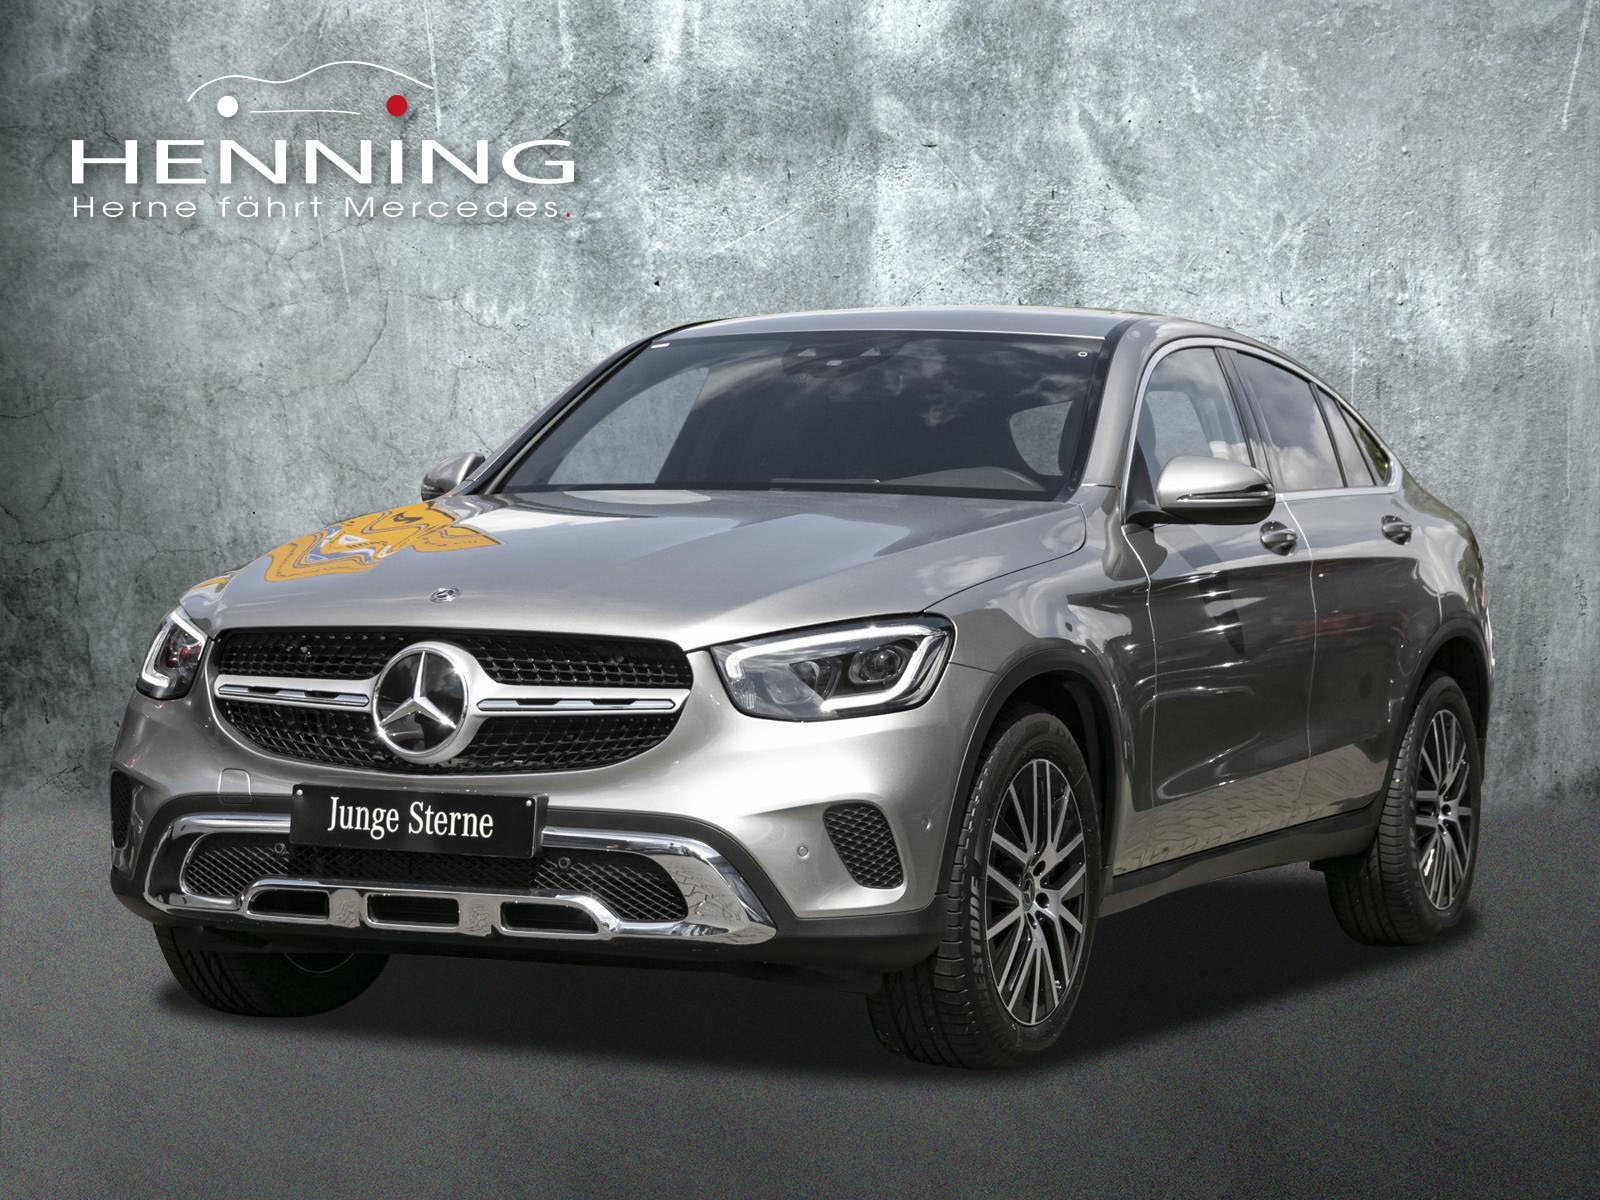 MERCEDES-BENZ GLC 300 4M Coupe